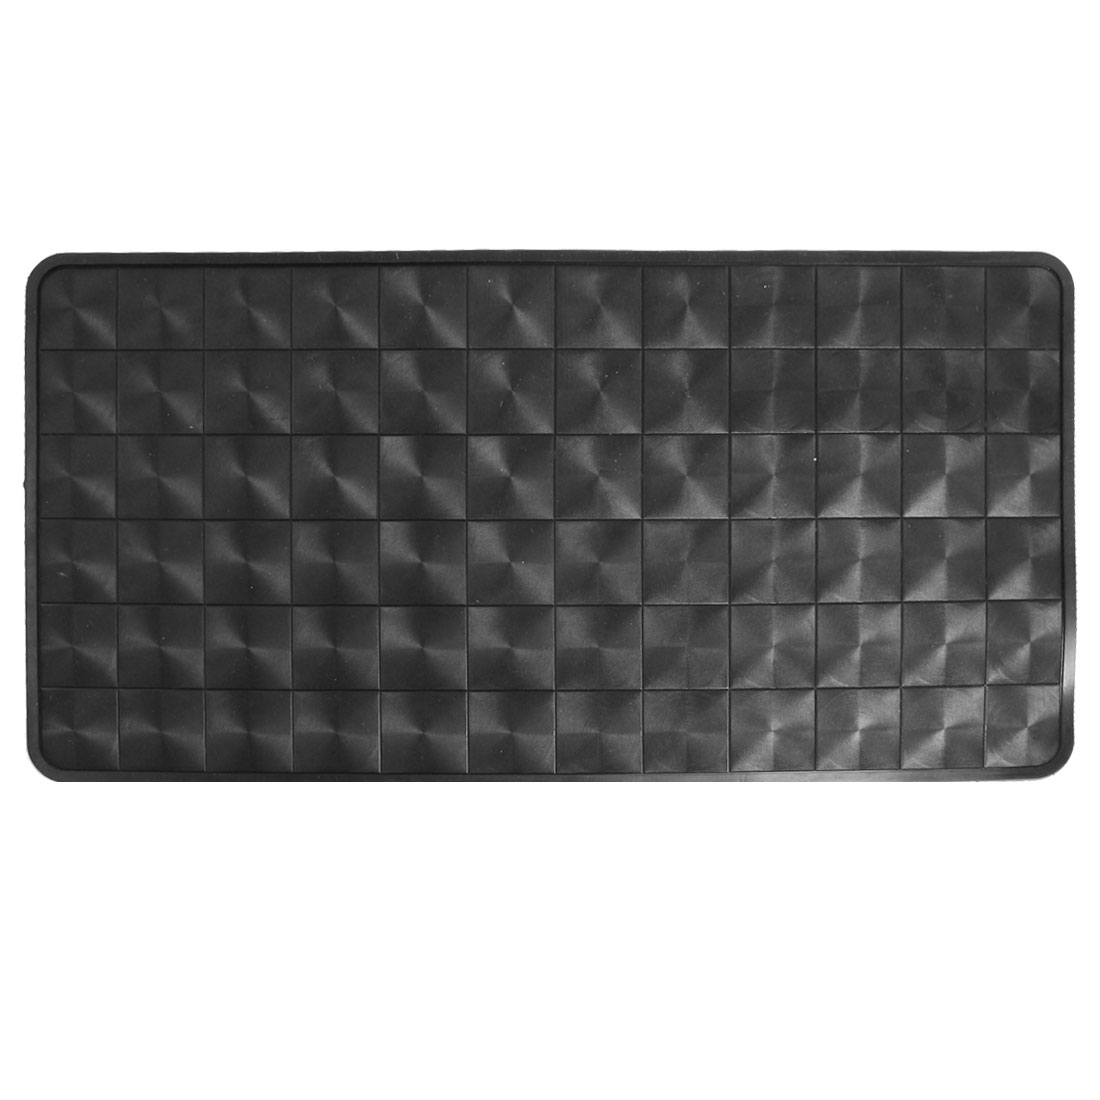 Auto Car Rectangle Mobile Phone Holding Nonslip Rubber Pad Mat Black